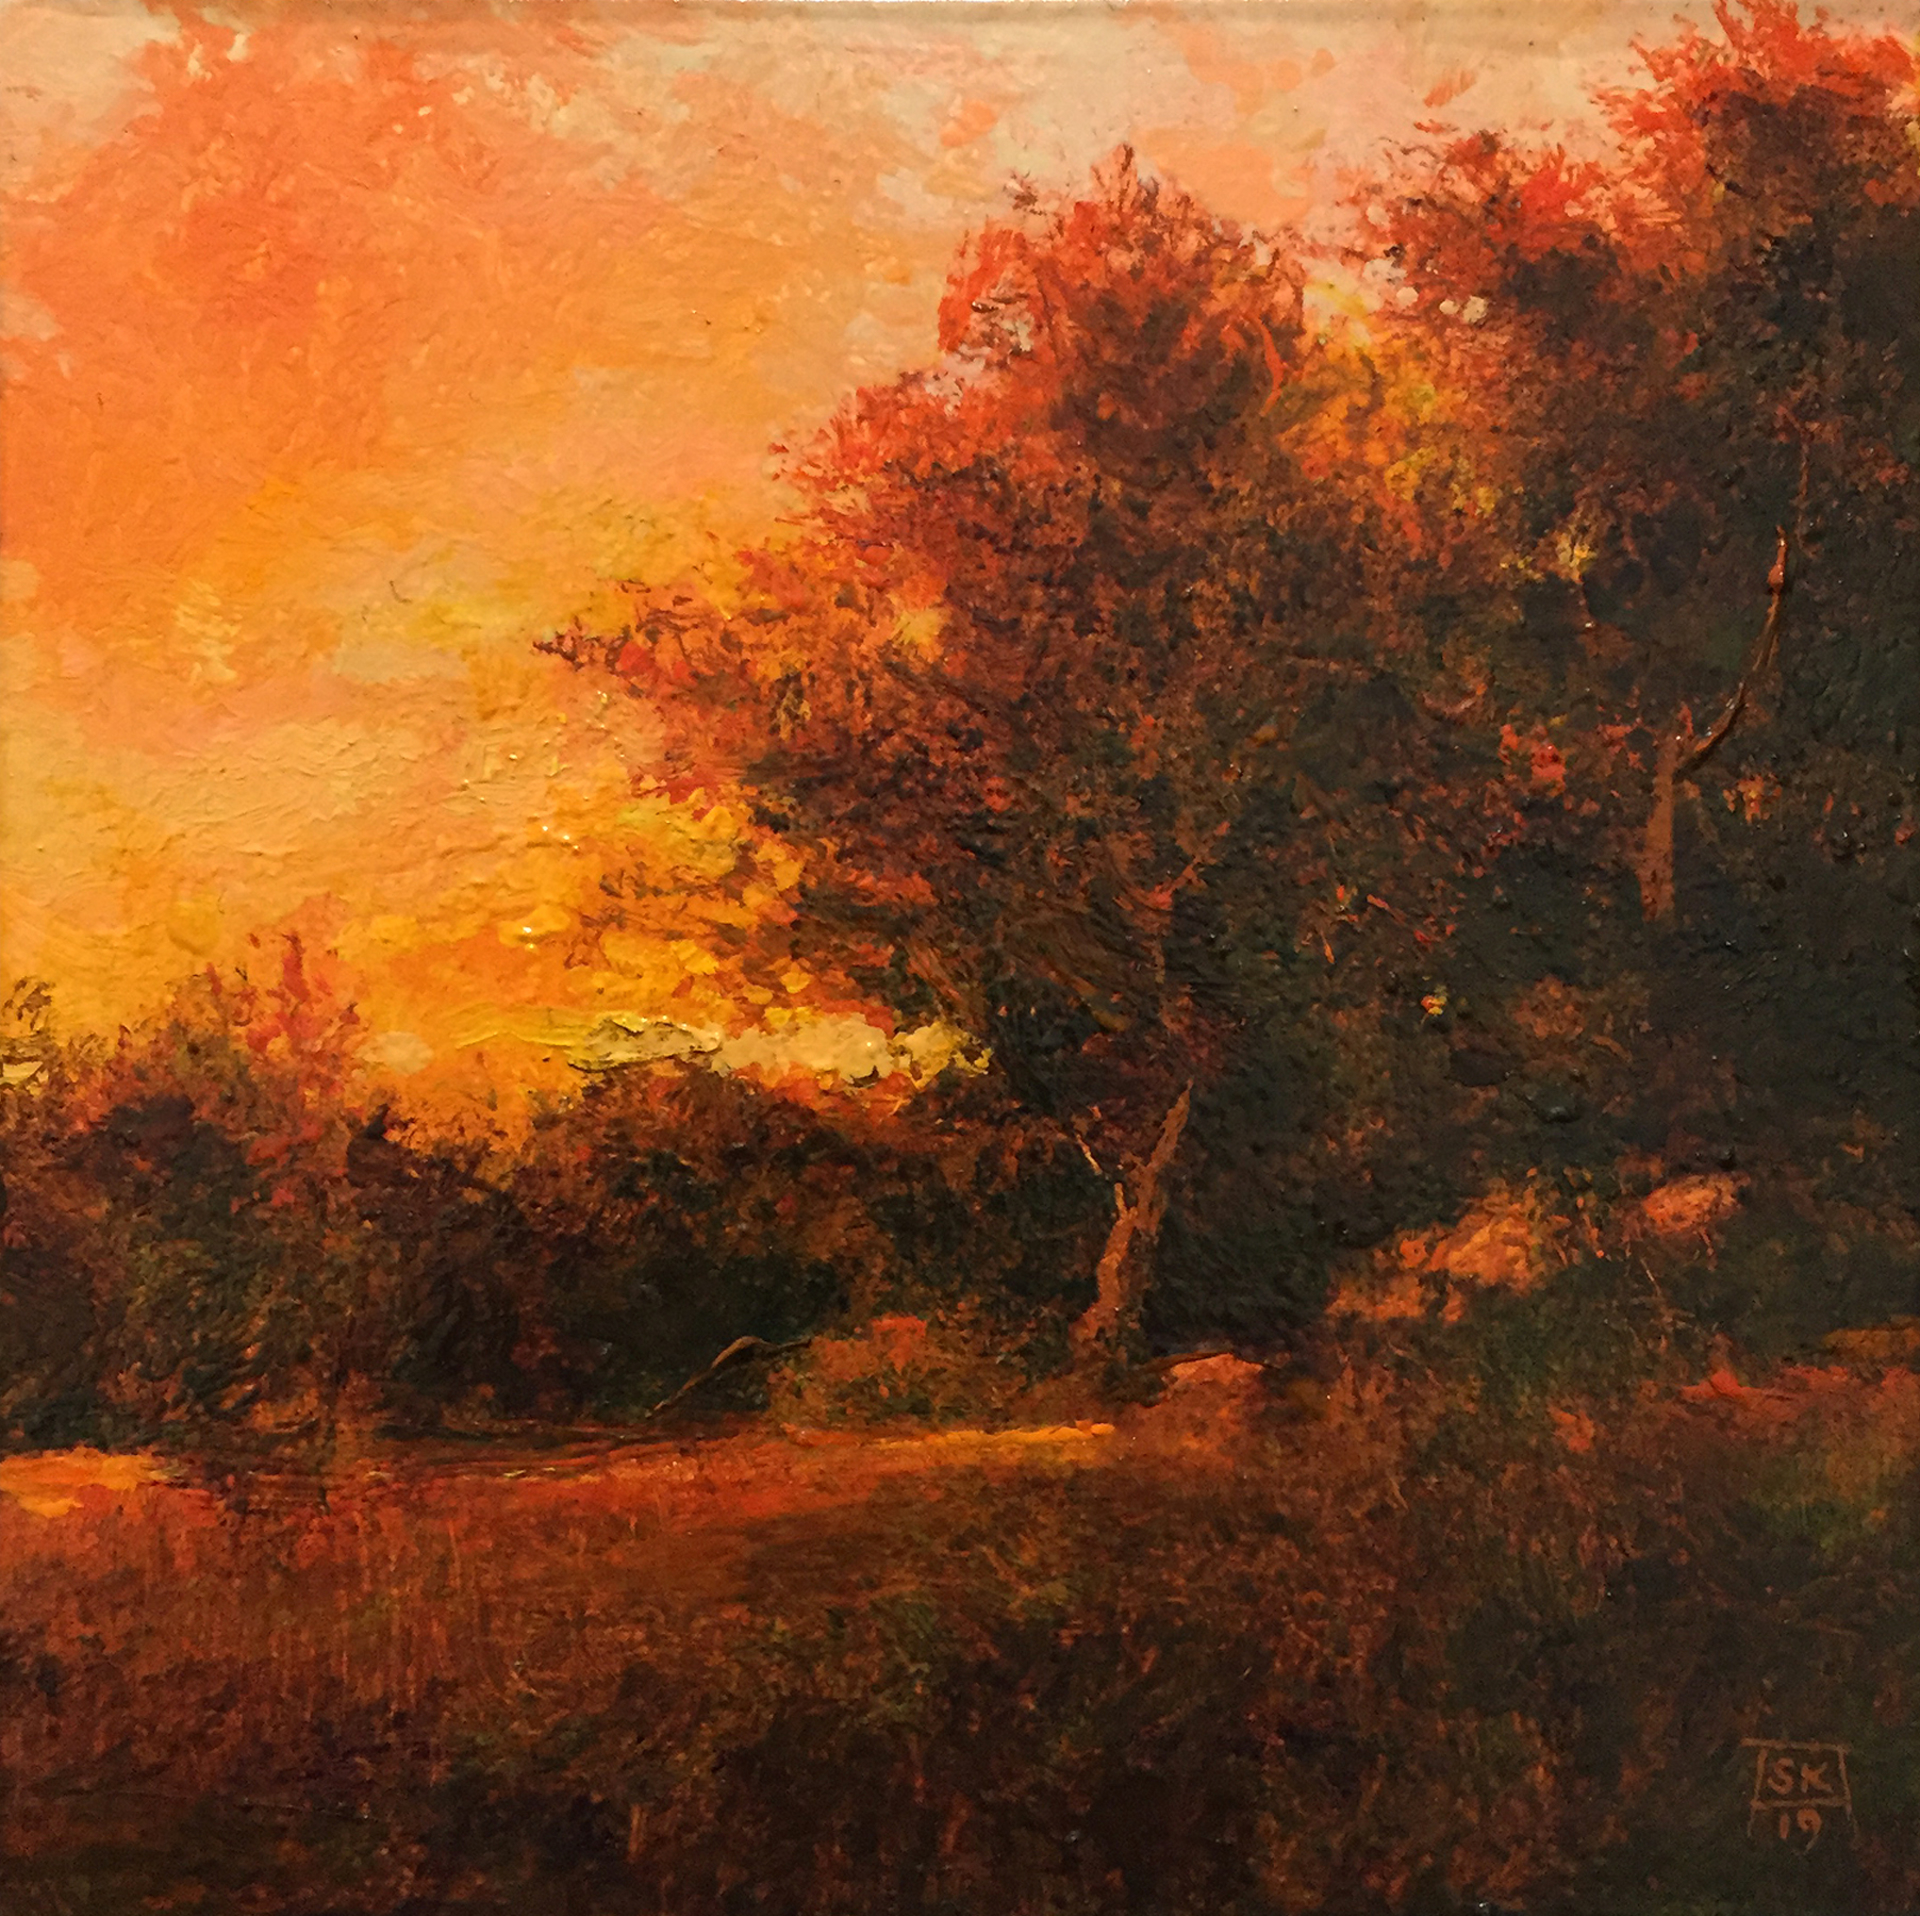 Evening (Ode to F. DeHaven) by Shawn Krueger